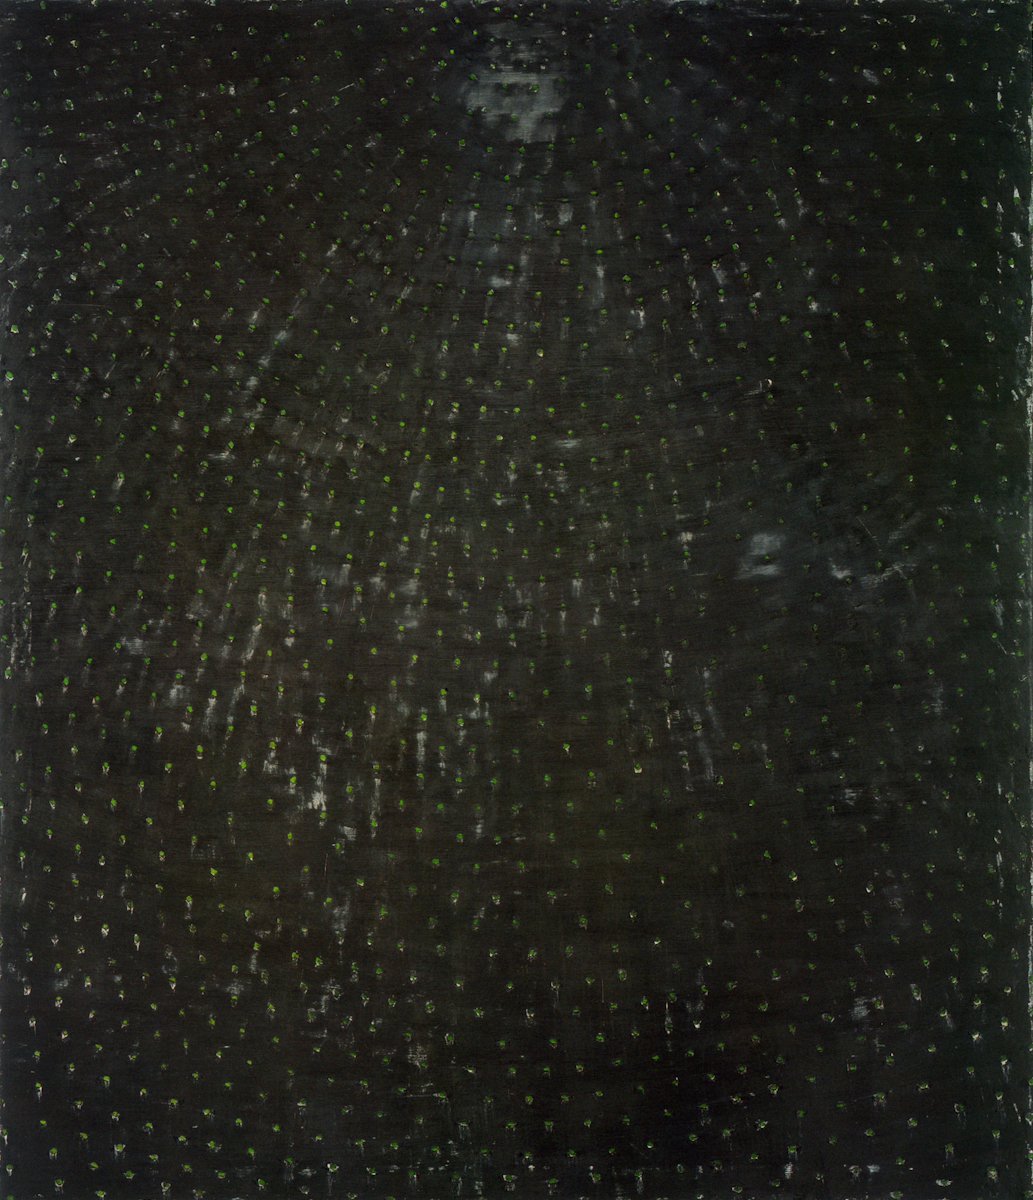 Ross Bleckner, Architecture of the Sky V, 1989.